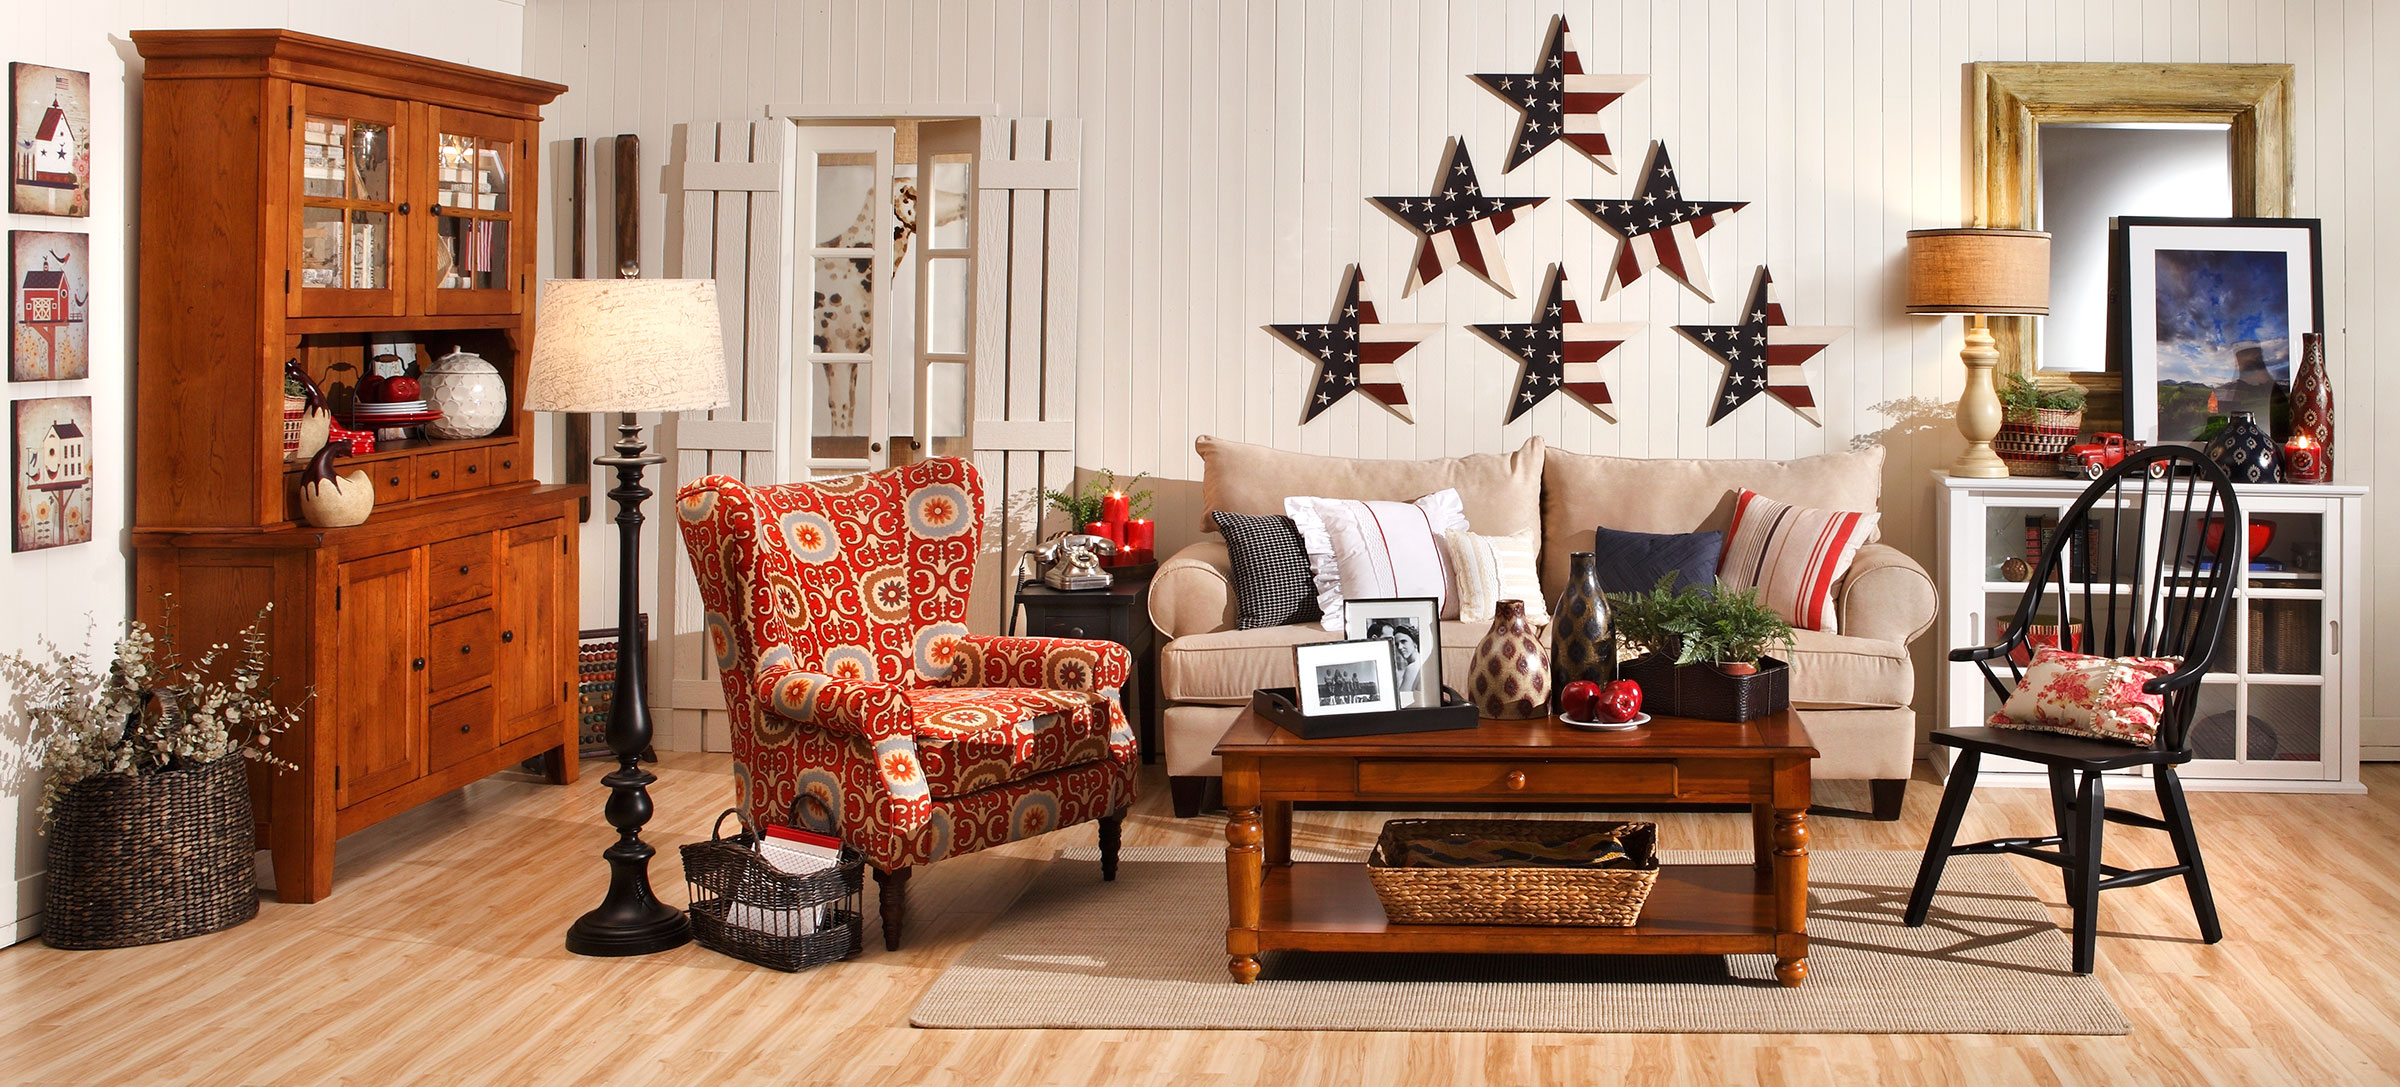 Americana Home Décor – Red, White and Blue Décor for Your Home